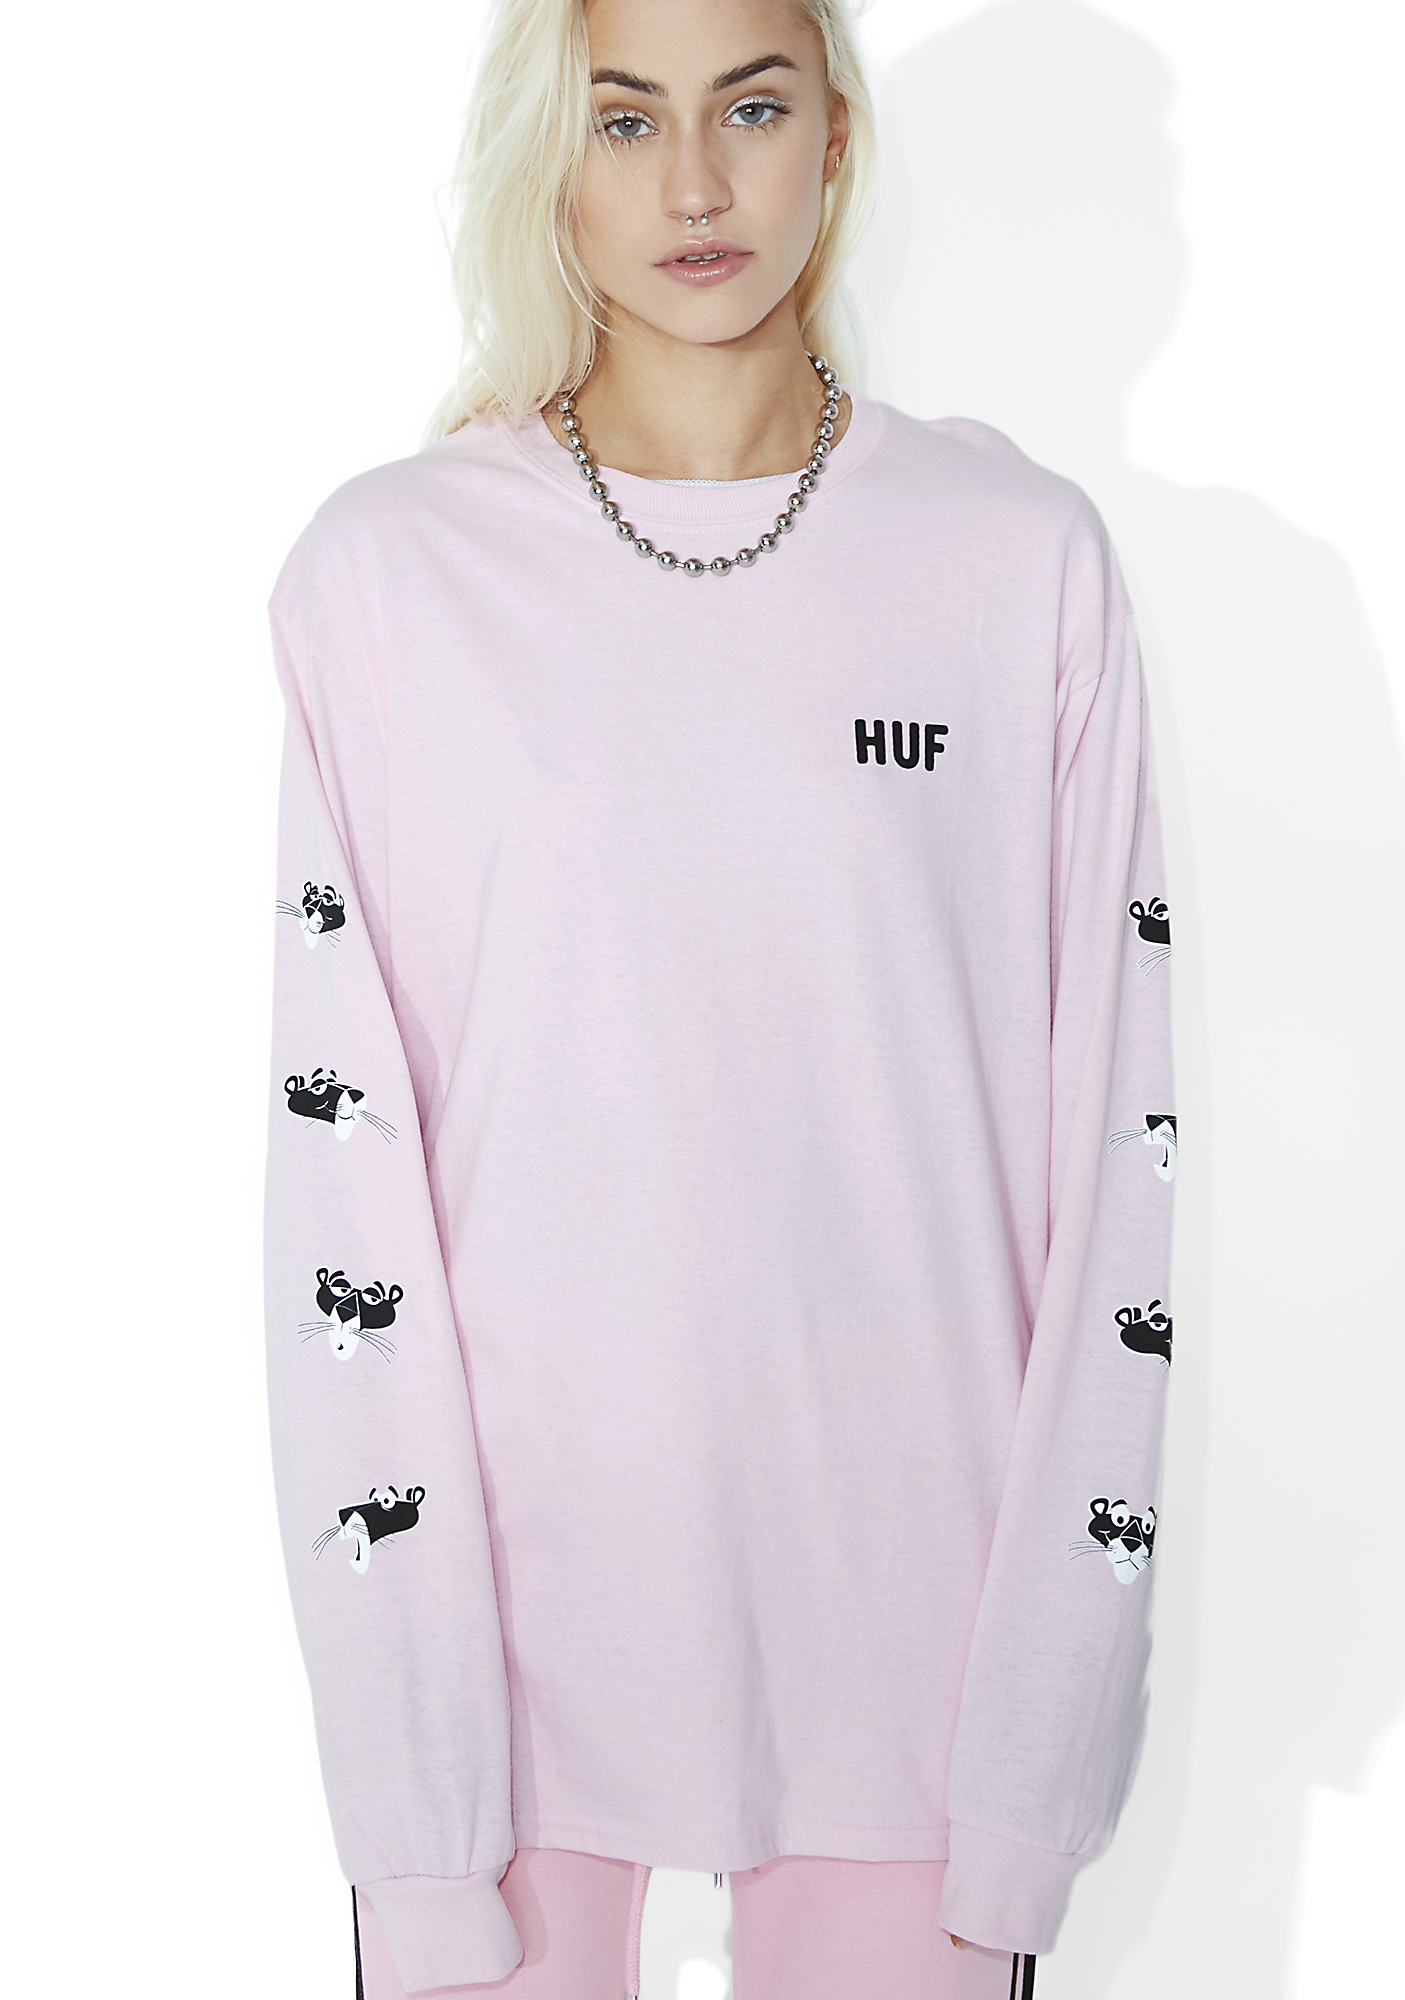 HUF x Pink Panther Heads Long Sleeve Tee